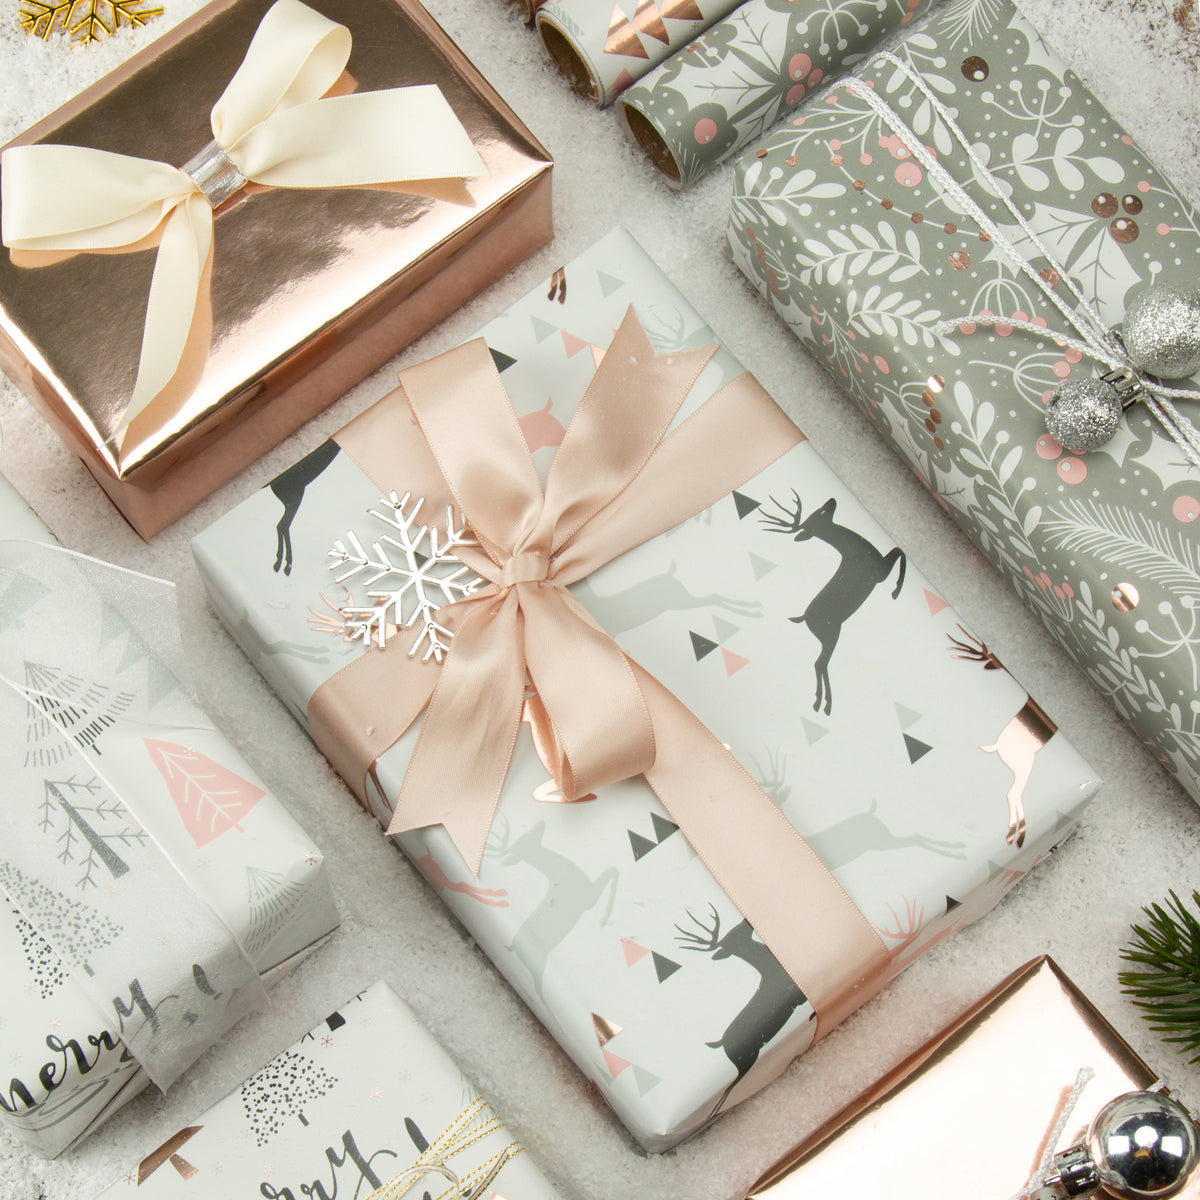 Wrapaholic-Rose-Gold-and- Grey-Holiday-Design-with-Metallic-Foil-Shine-Christmas-Gift-Wrapping-Paper-Roll-4 Rolls-4